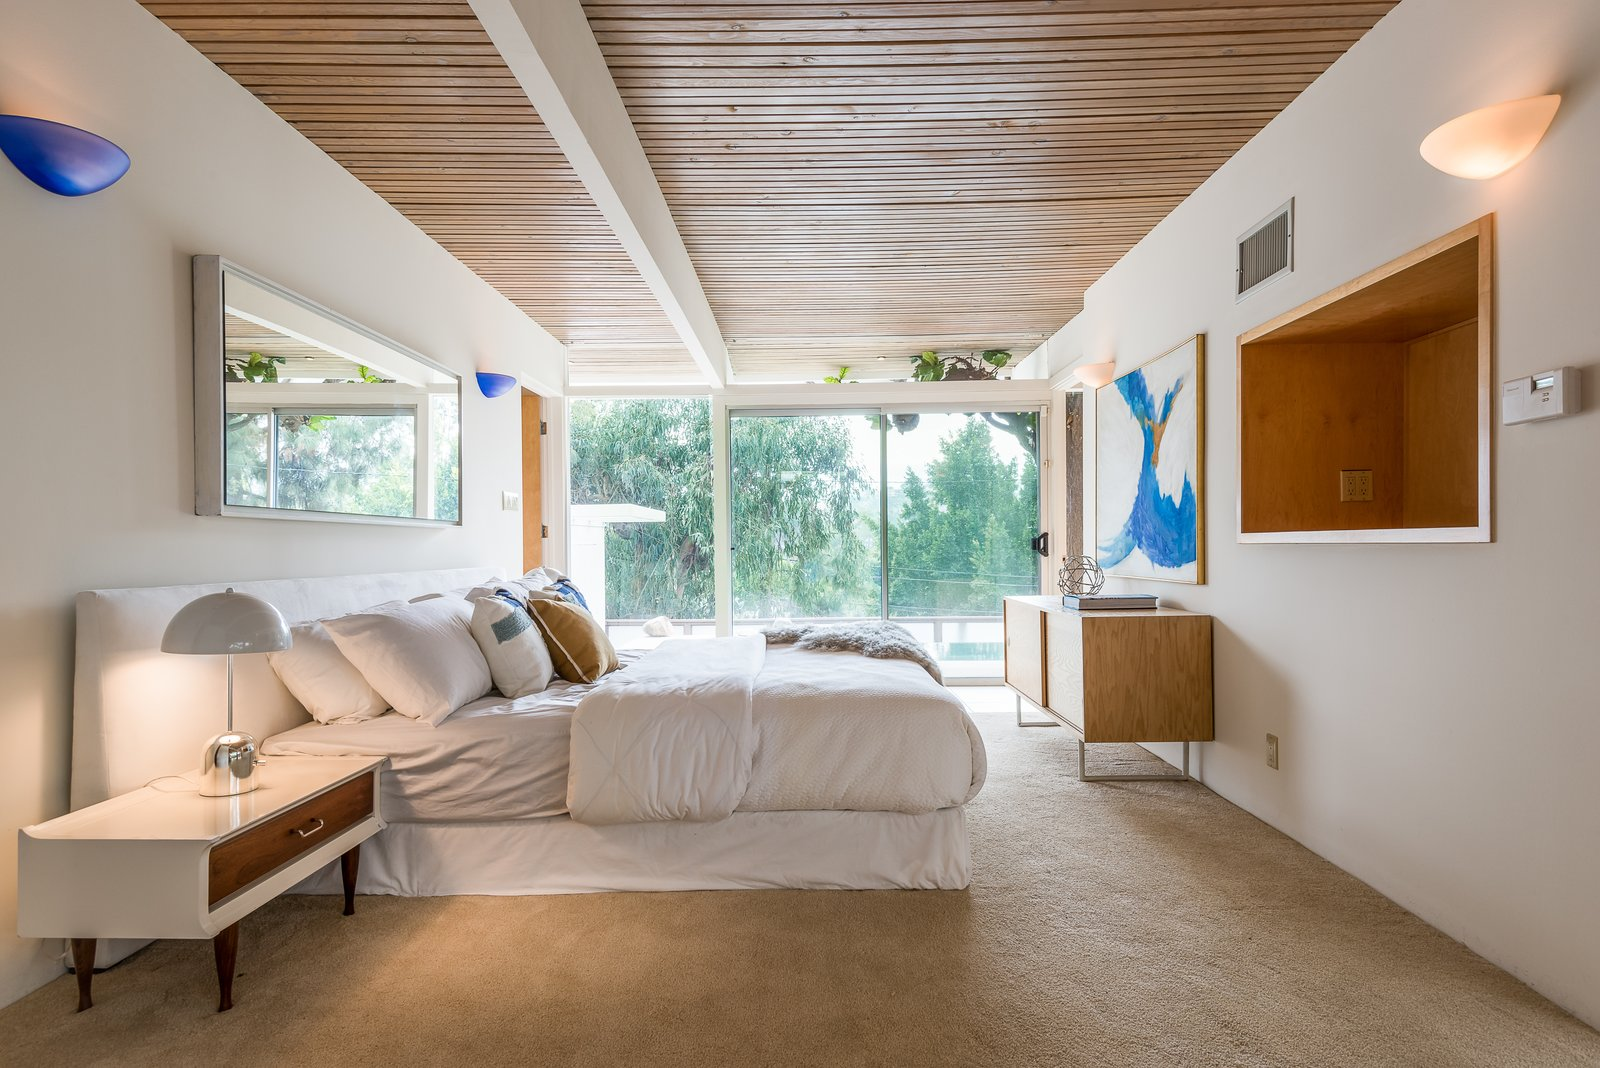 Bedroom, Night Stands, Table, Bed, Lamps, Wall, Carpet, and Storage A bedroom that looks out to canyon views.  Best Bedroom Storage Table Bed Night Stands Photos from Composer Paul Buckmaster's Midcentury Gem Asks $1.39M